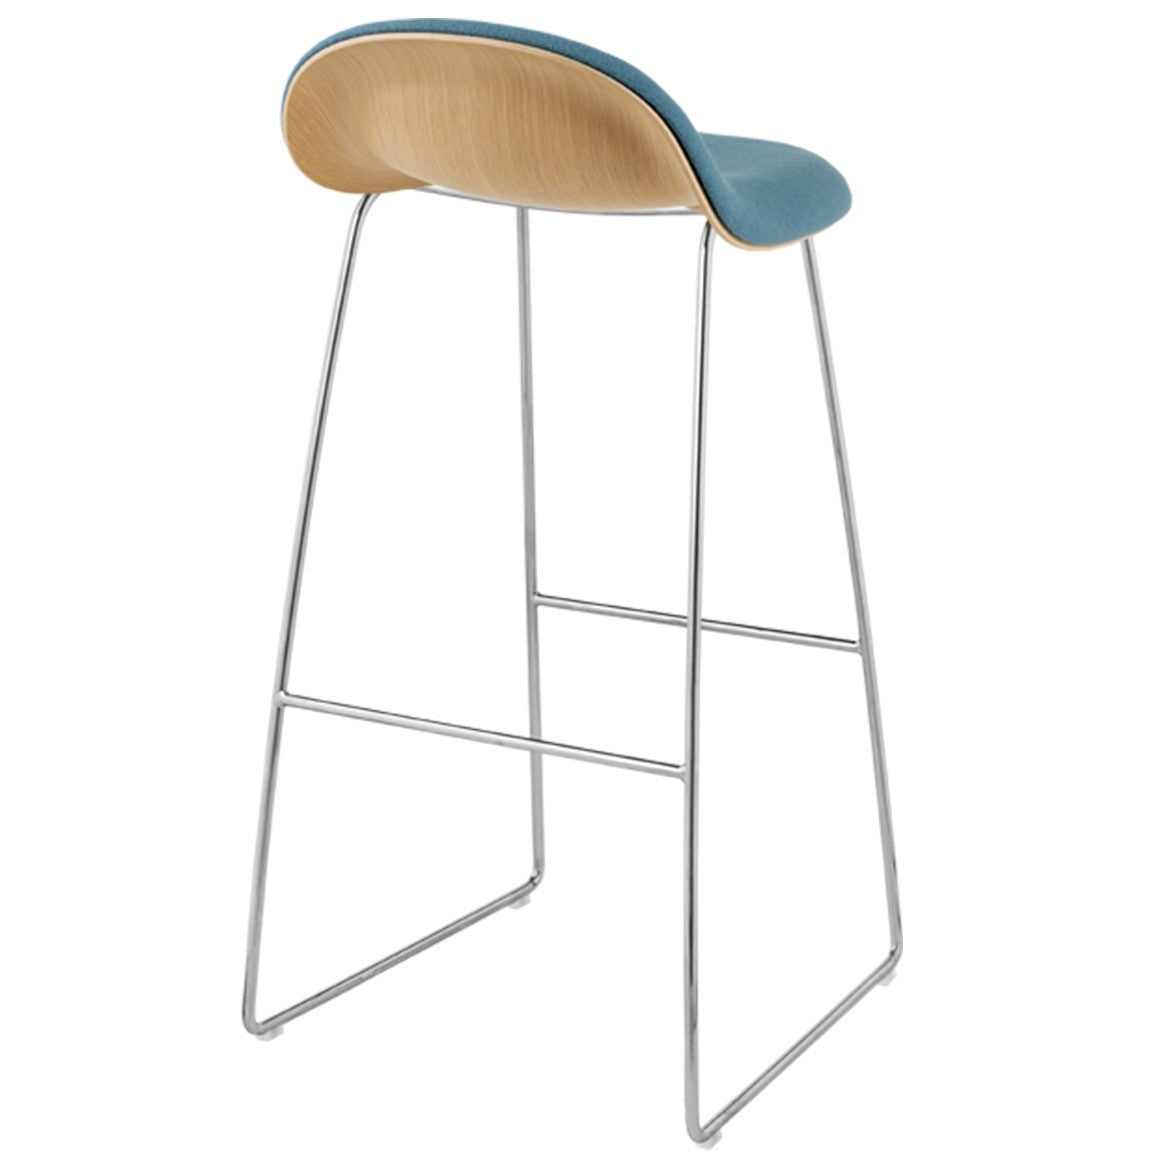 GUBI 3 STOOL-CHROME BASE - Eclectic Cool  - 14